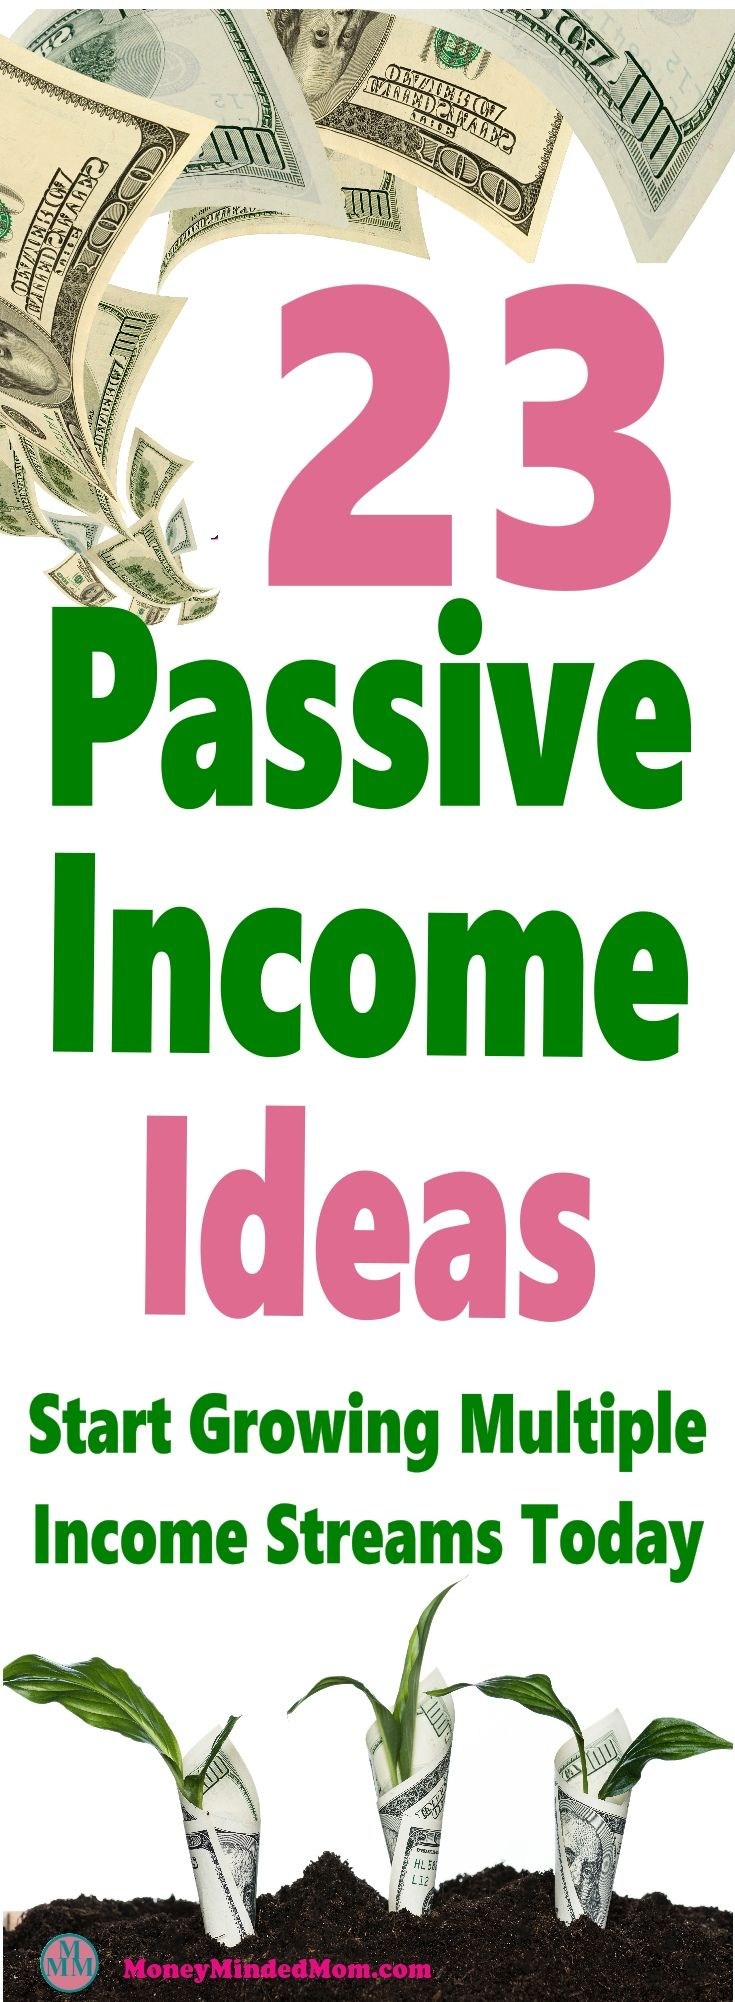 23 Passive Income Ideas To Make Easy Money While You Sleep – Places to Go